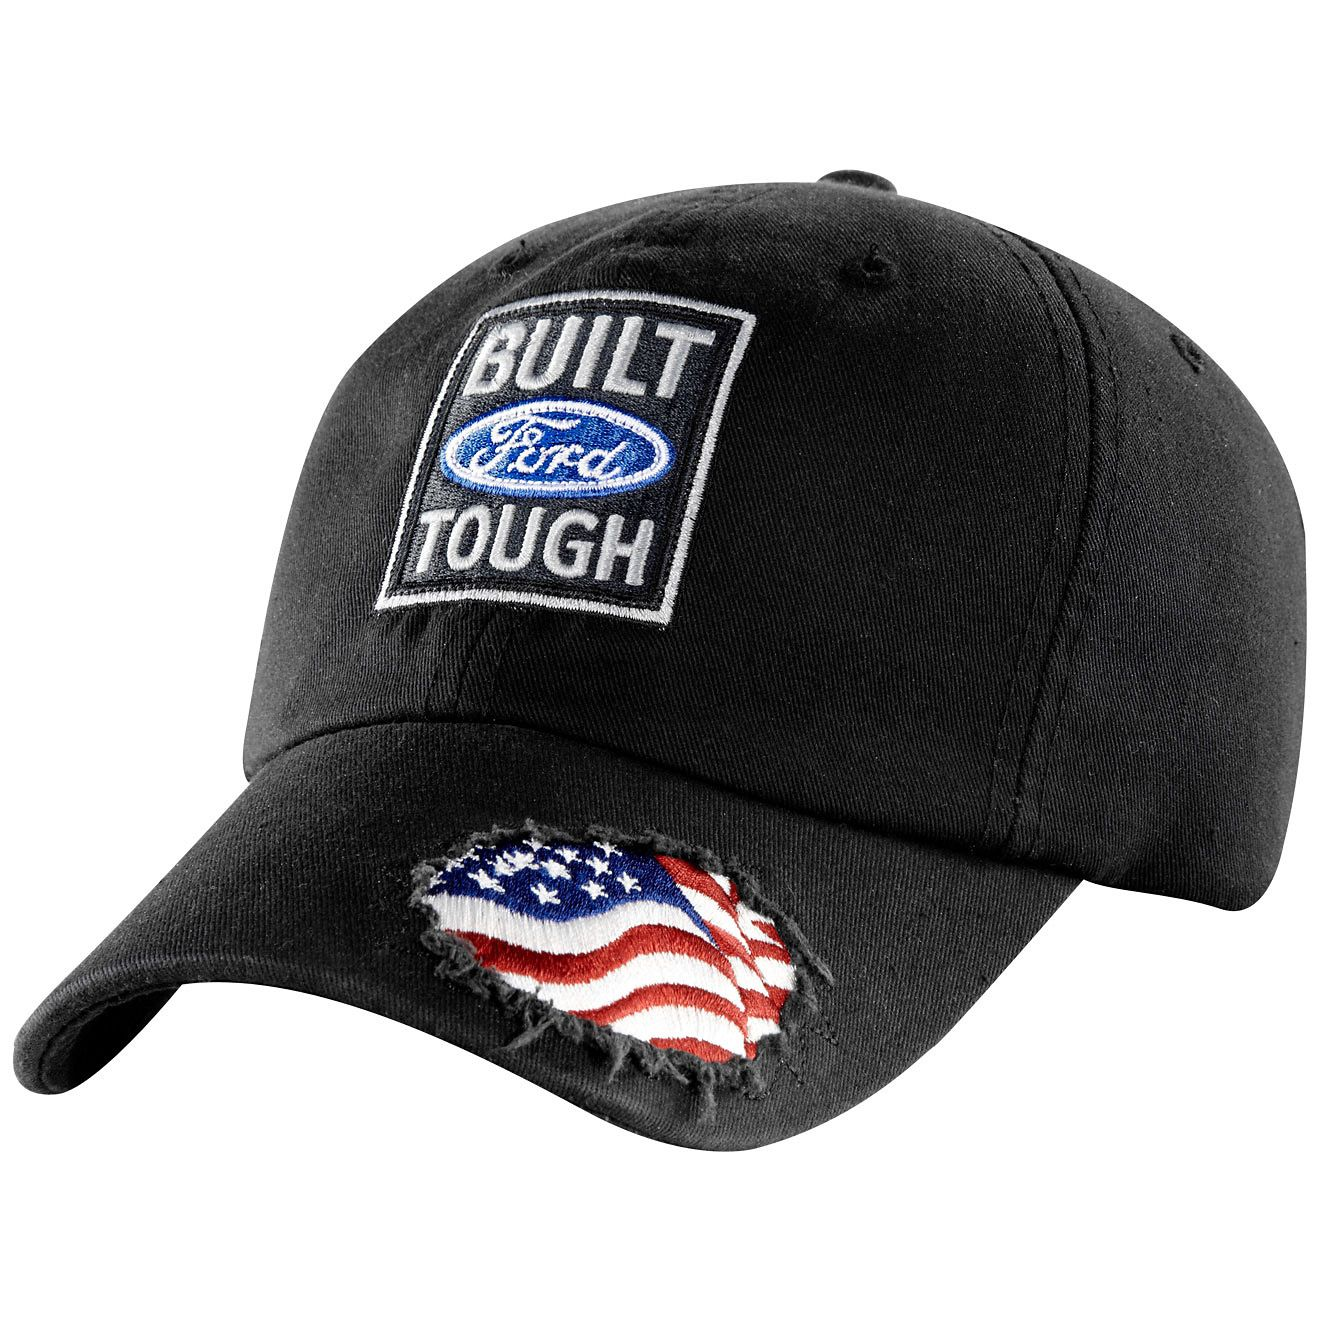 Built Ford Tough American Flag Black Cap Patriotic Design Features American Flag Visible Thro Sneakers Men Fashion Country Hats Cute Country Outfits